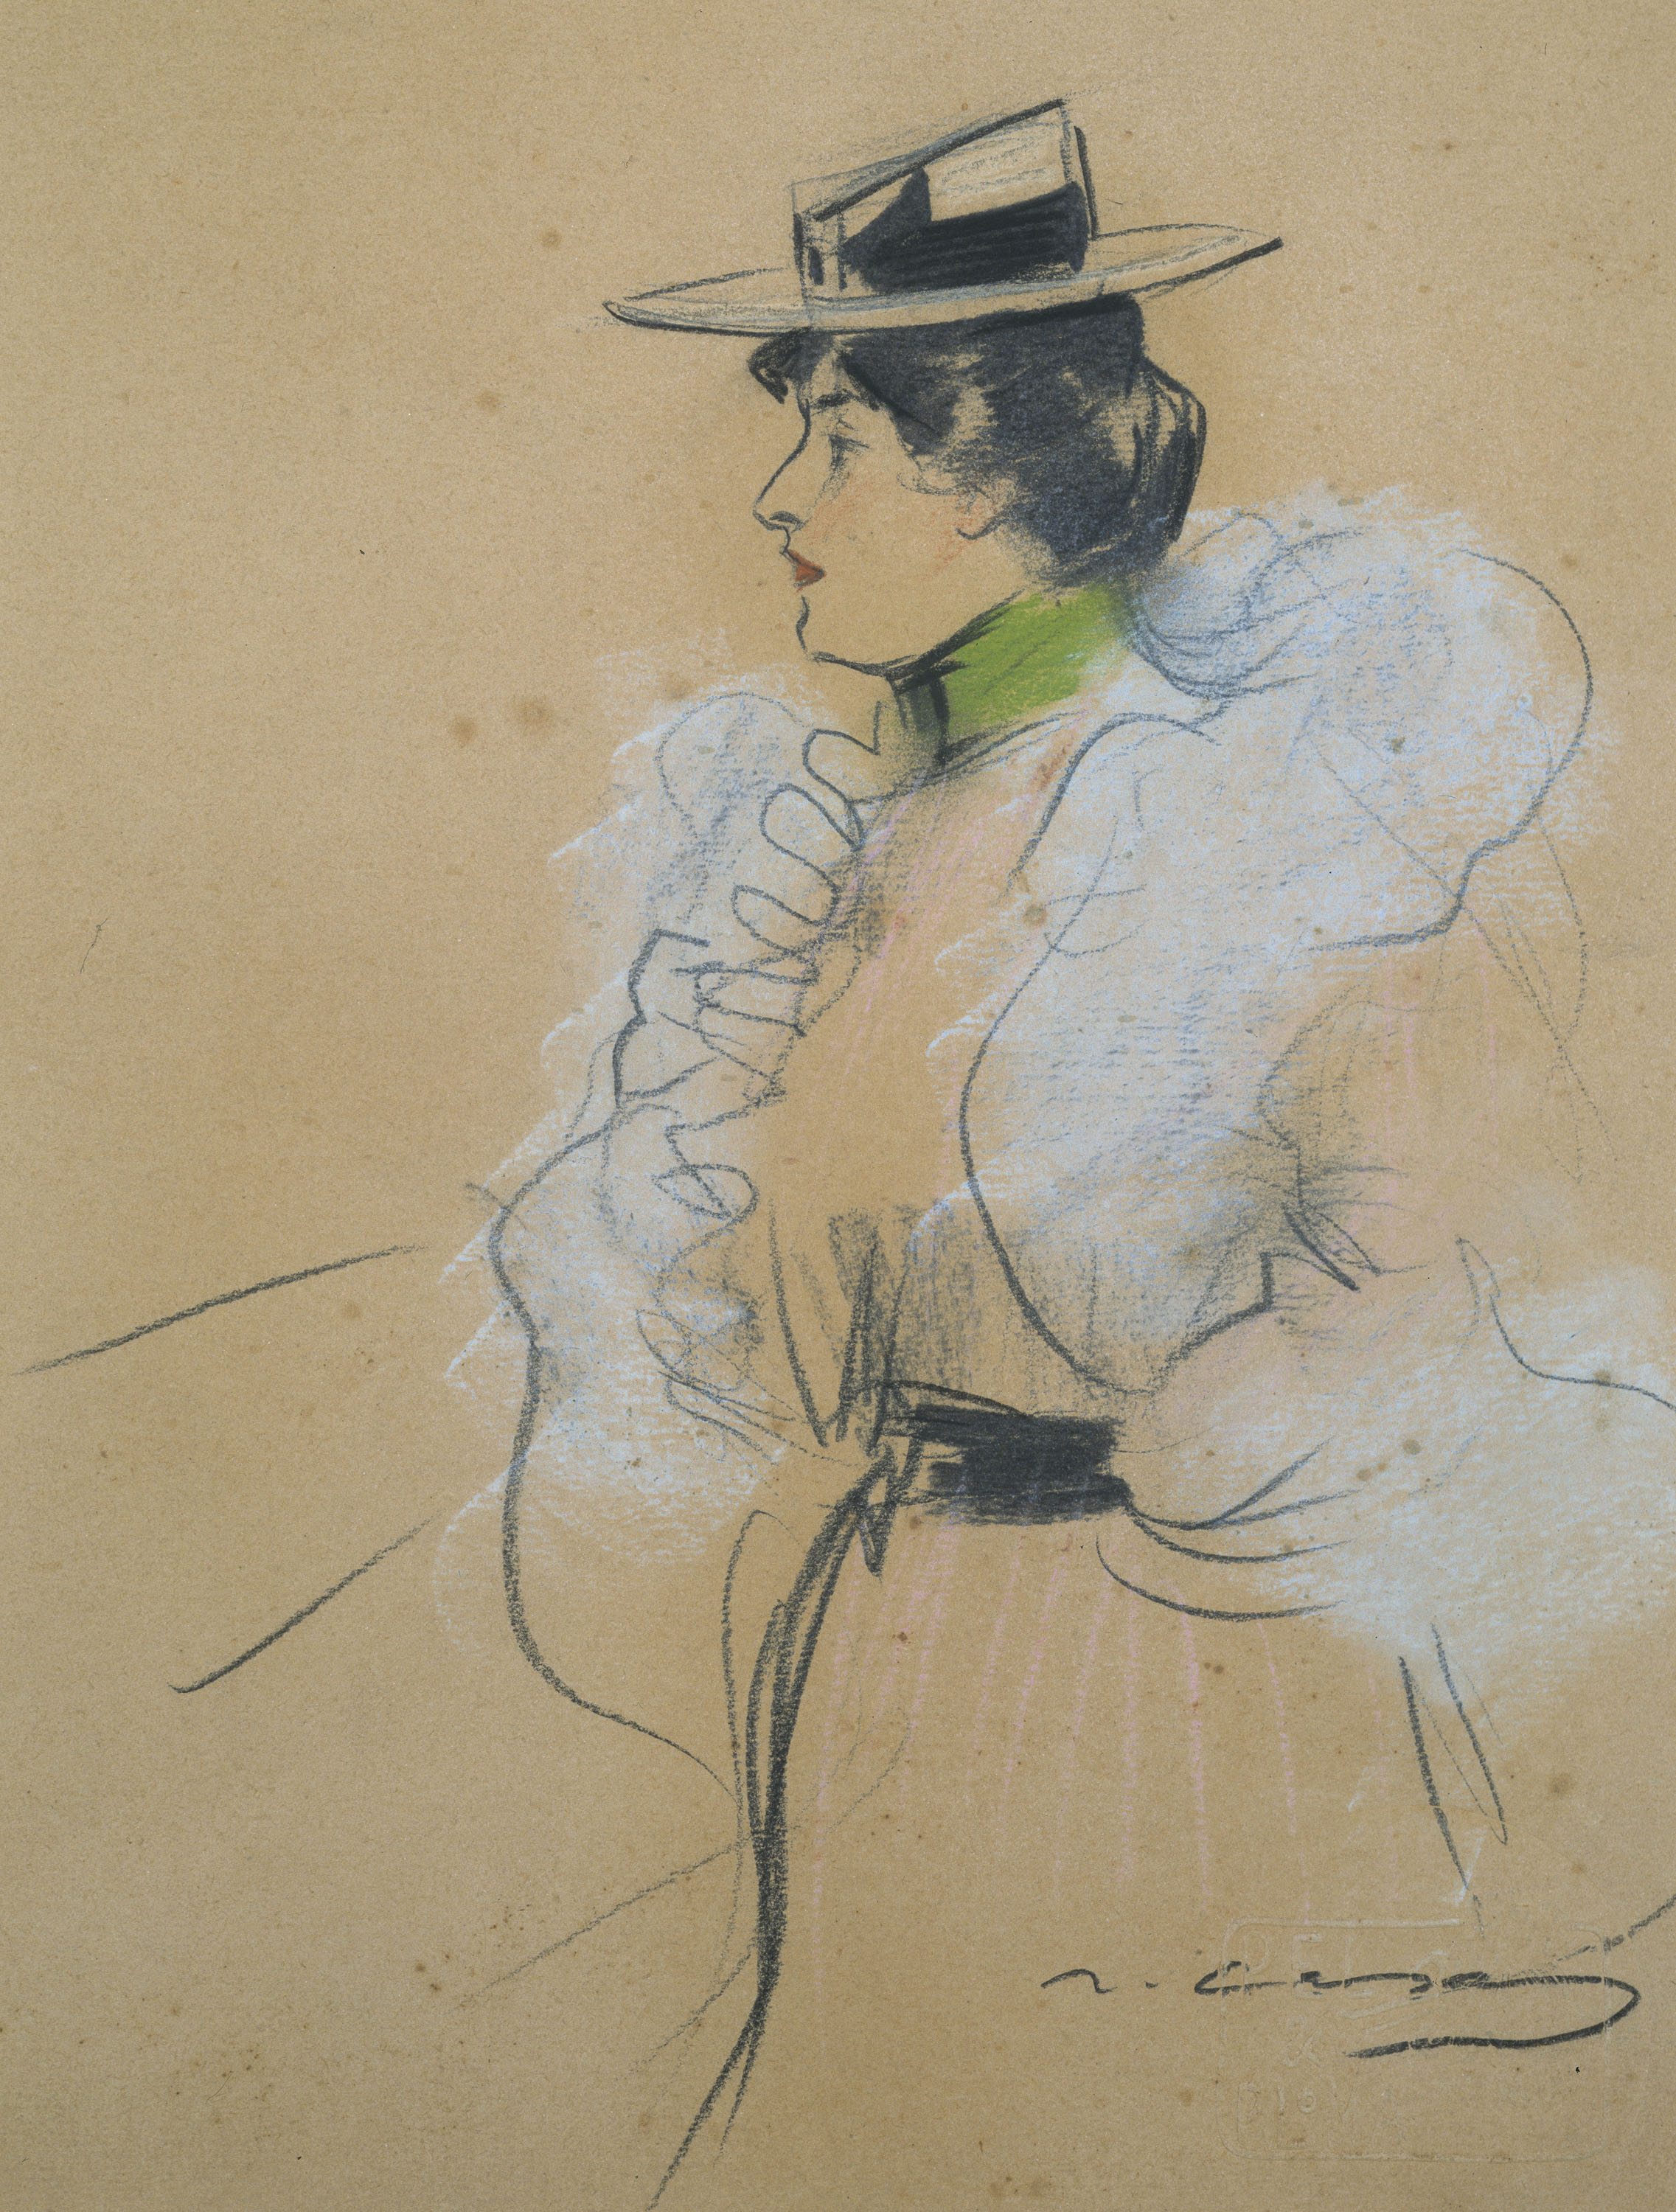 Ramon Casas - Female figure in profile - Circa 1899